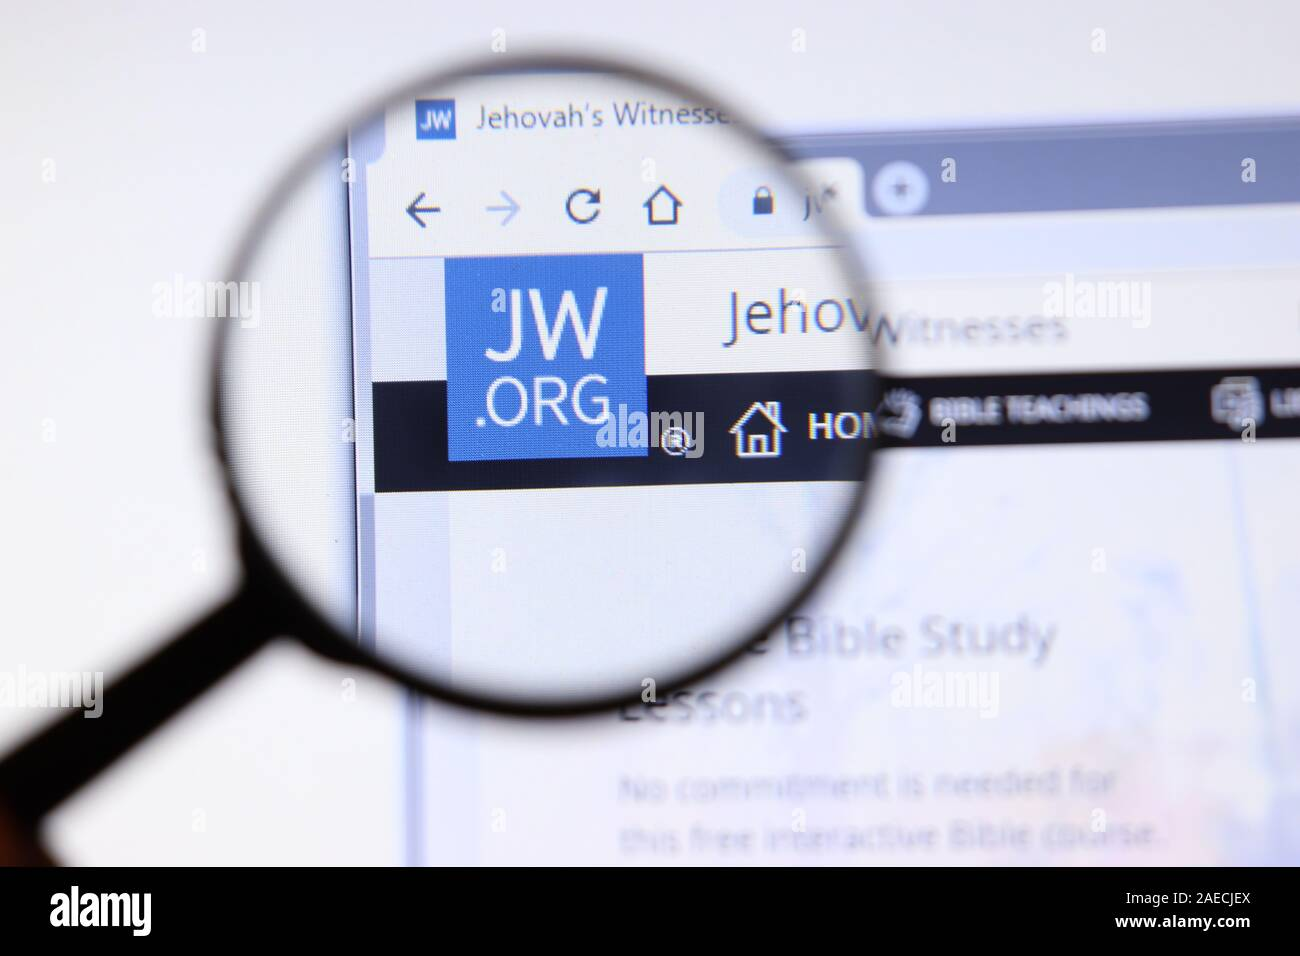 Los Angeles California Usa 3 December 2019 Jw Website Page Jw Org Logo On Display Screen Illustrative Editorial Stock Photo Alamy Download free jw.org vector logo and icons in ai, eps, cdr, svg, png formats. https www alamy com los angeles california usa 3 december 2019 jw website page jworg logo on display screen illustrative editorial image335880130 html